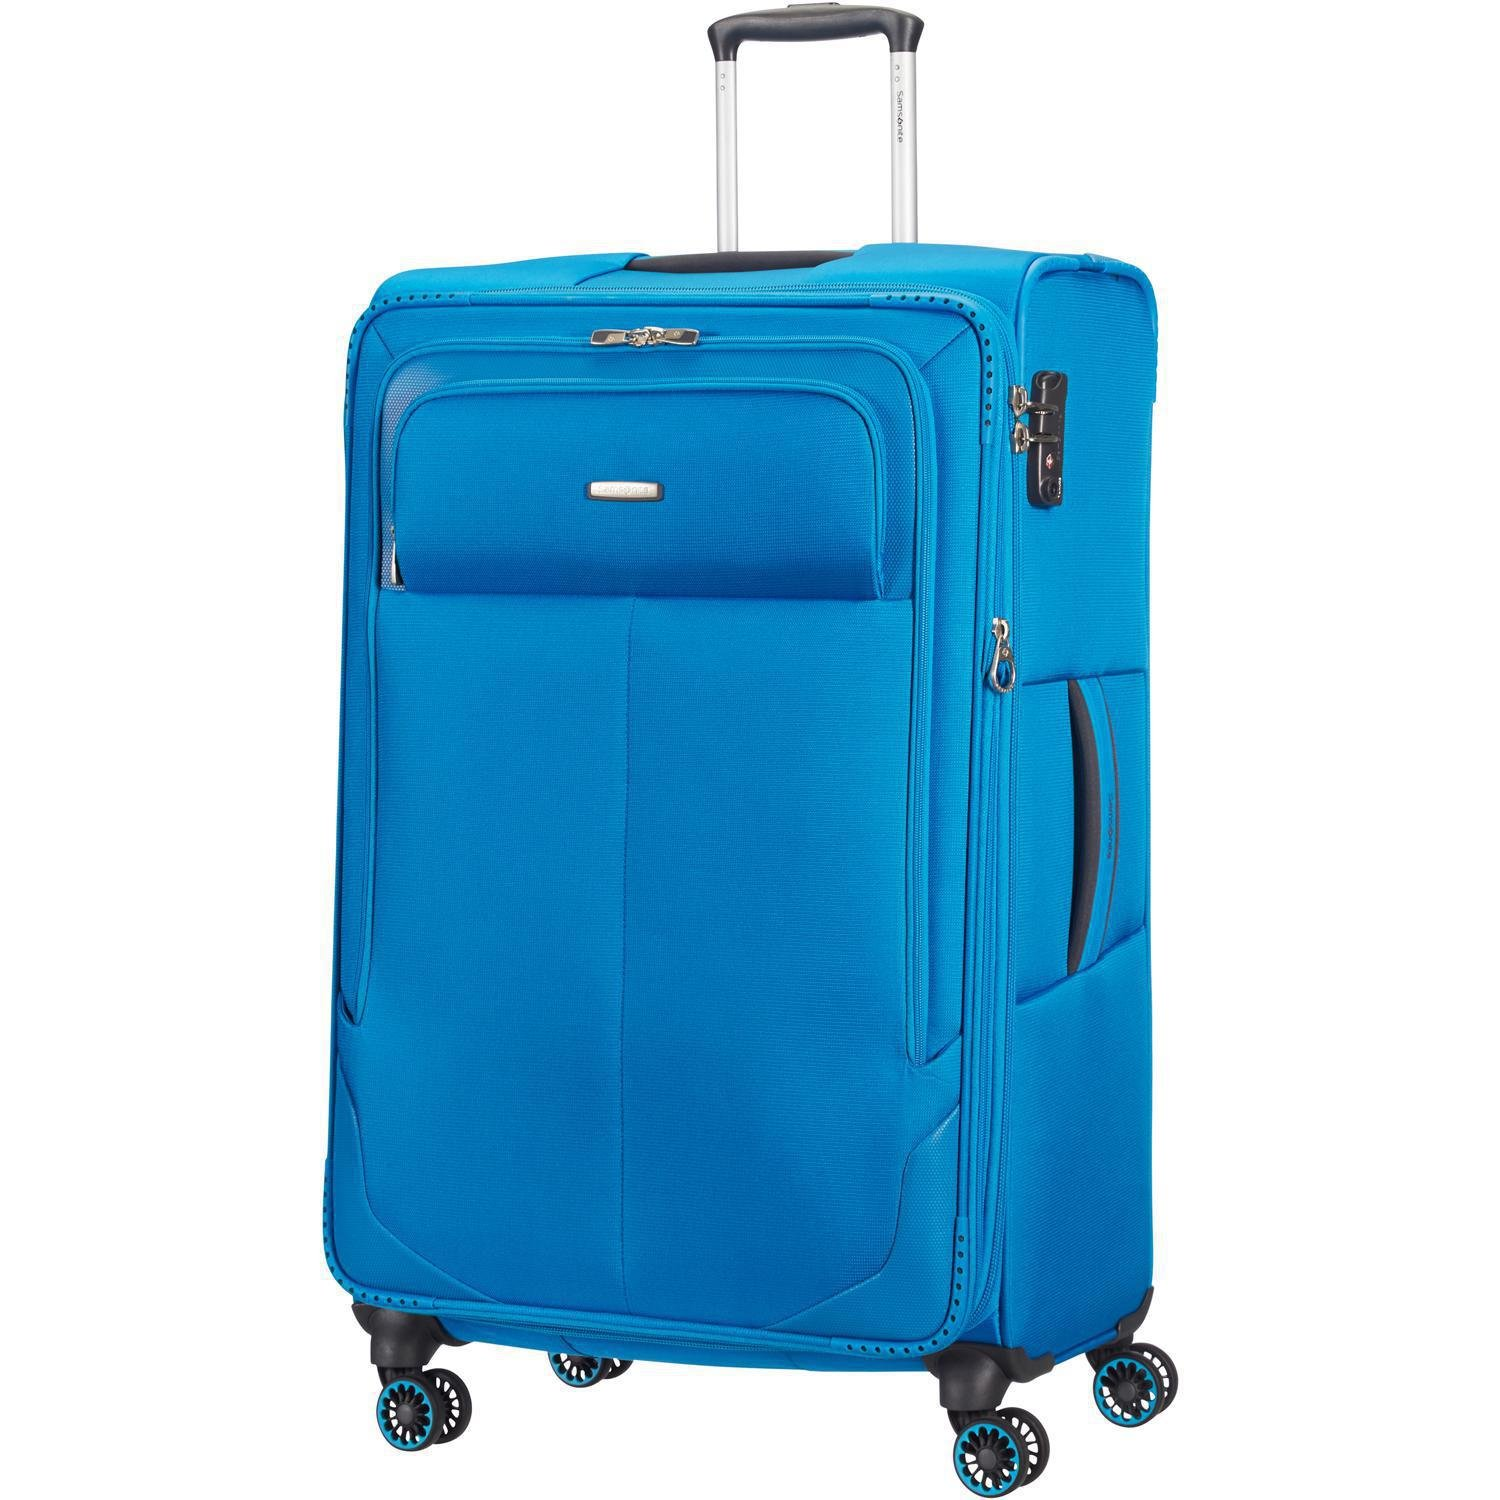 Samsonite Ultracore Spinner 78/29 Exp Maletas y trolleys, 78 cm, 114 L, Azul (Azul): Amazon.es: Equipaje